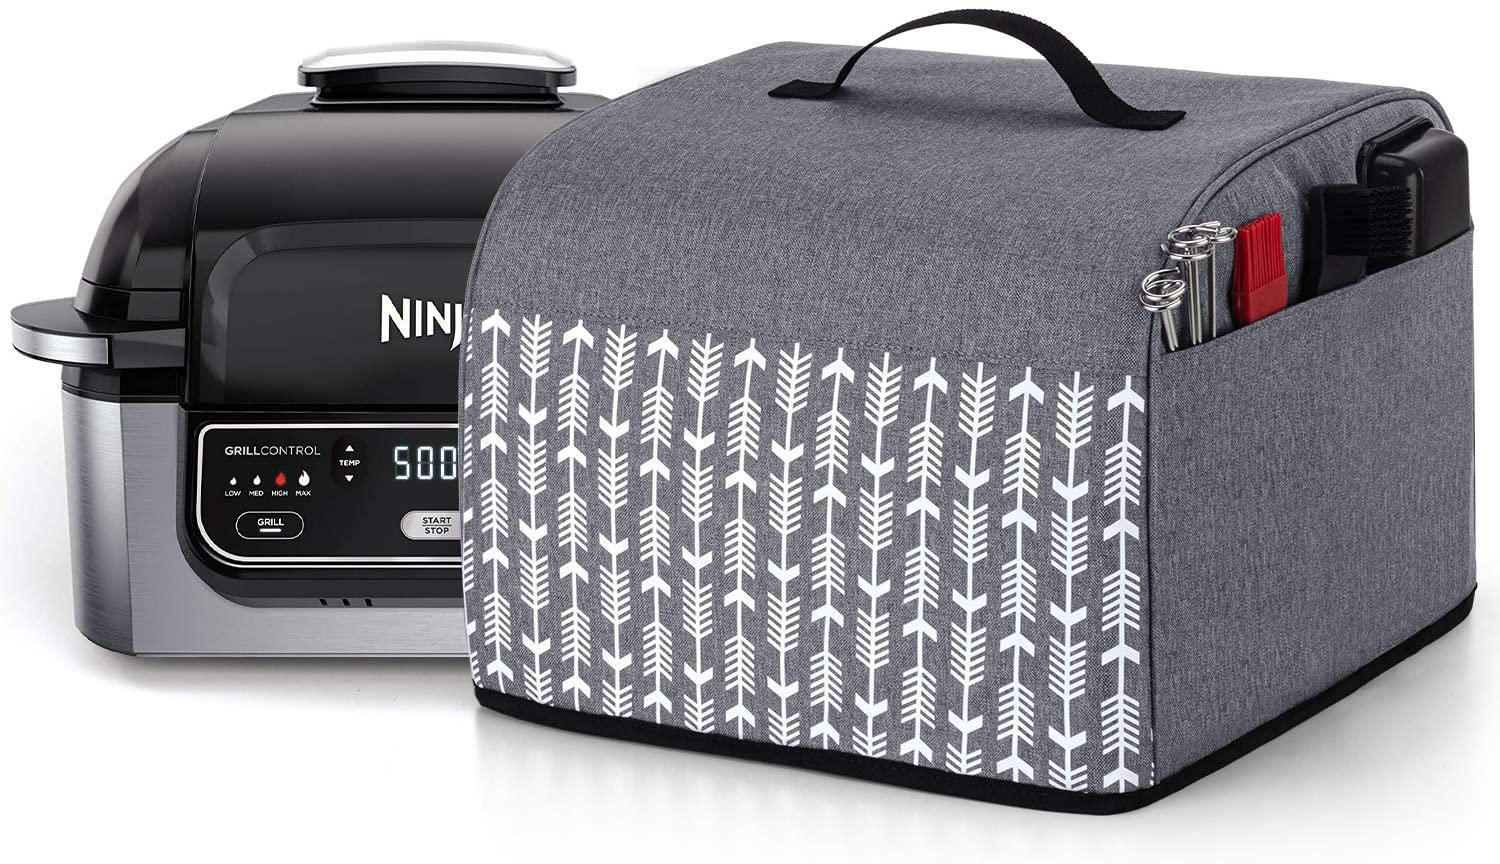 Yarwo Dust Cover with Pockets Compatible with Ninja Foodi Grill, Heavy Duty Nylon Cover with Wipe Clean Liner, Gray with Arrow